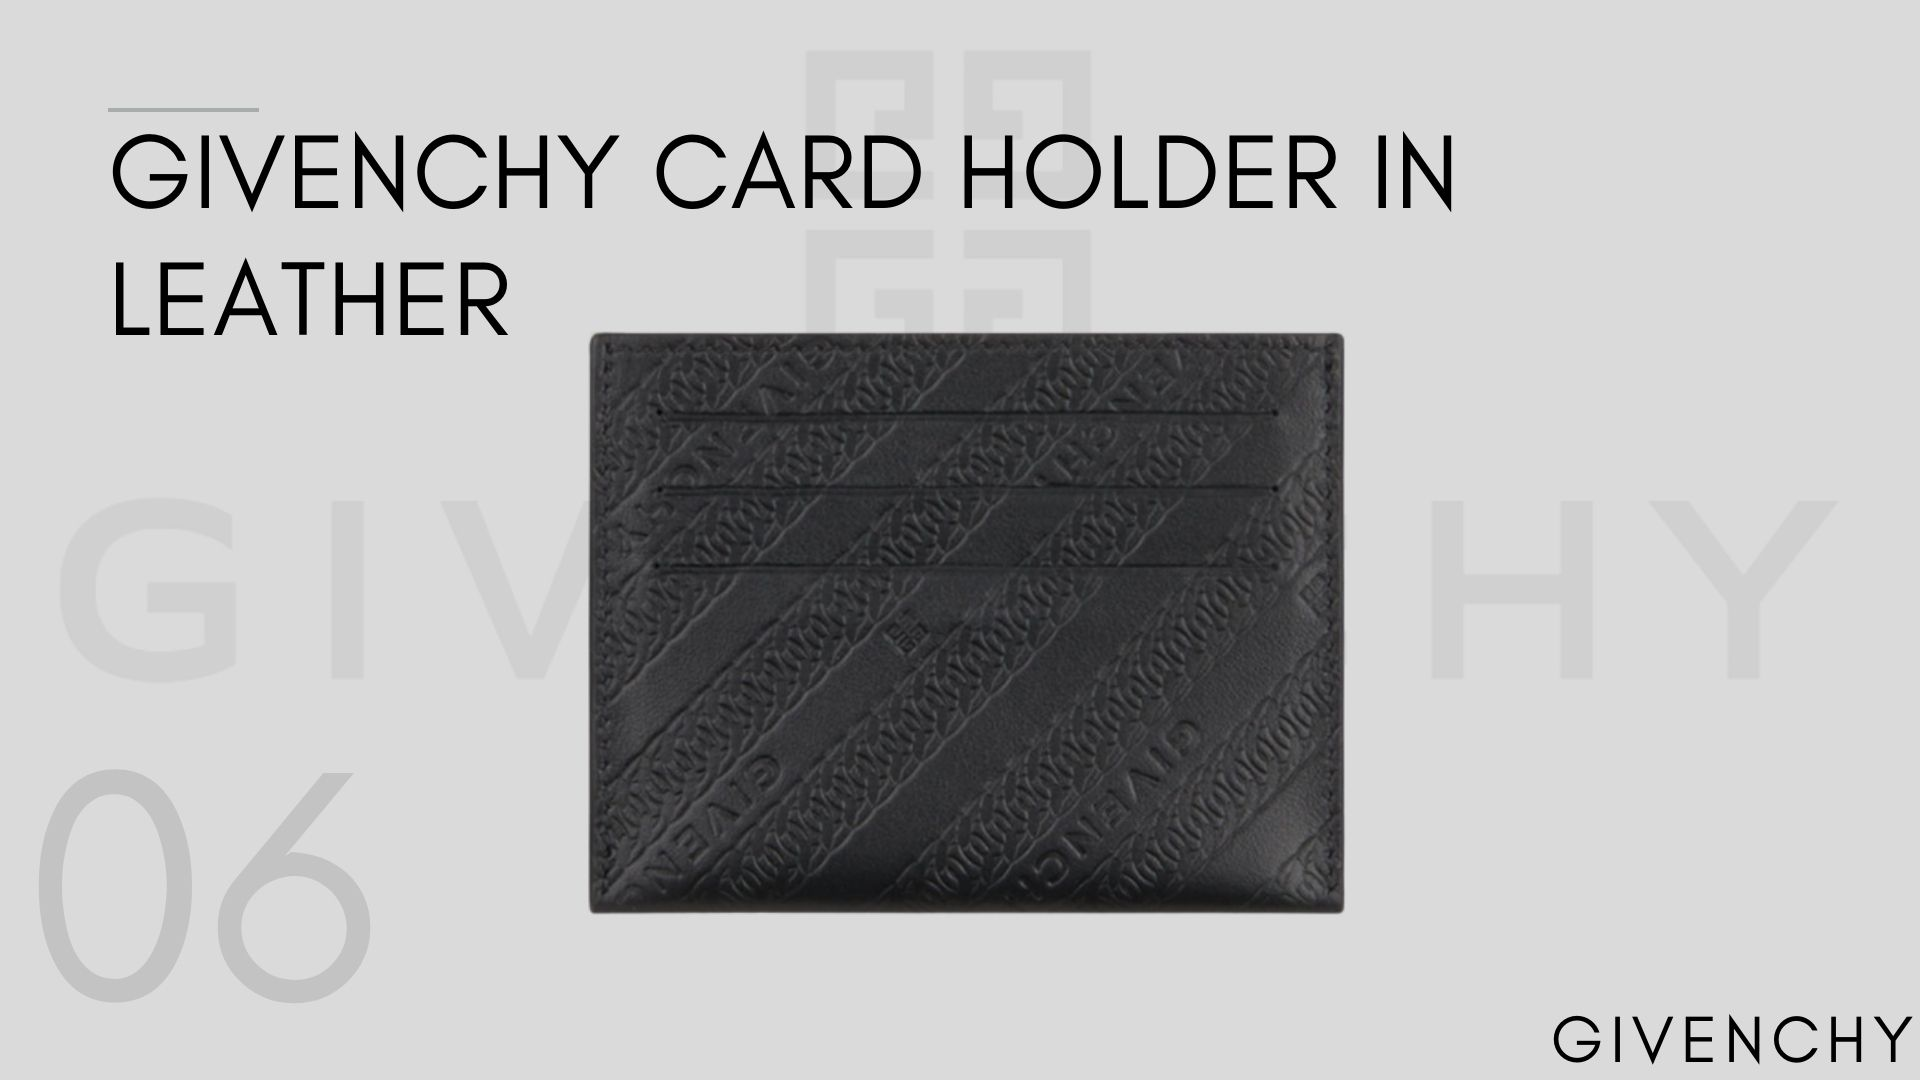 Givenchy CardHolder In Leather